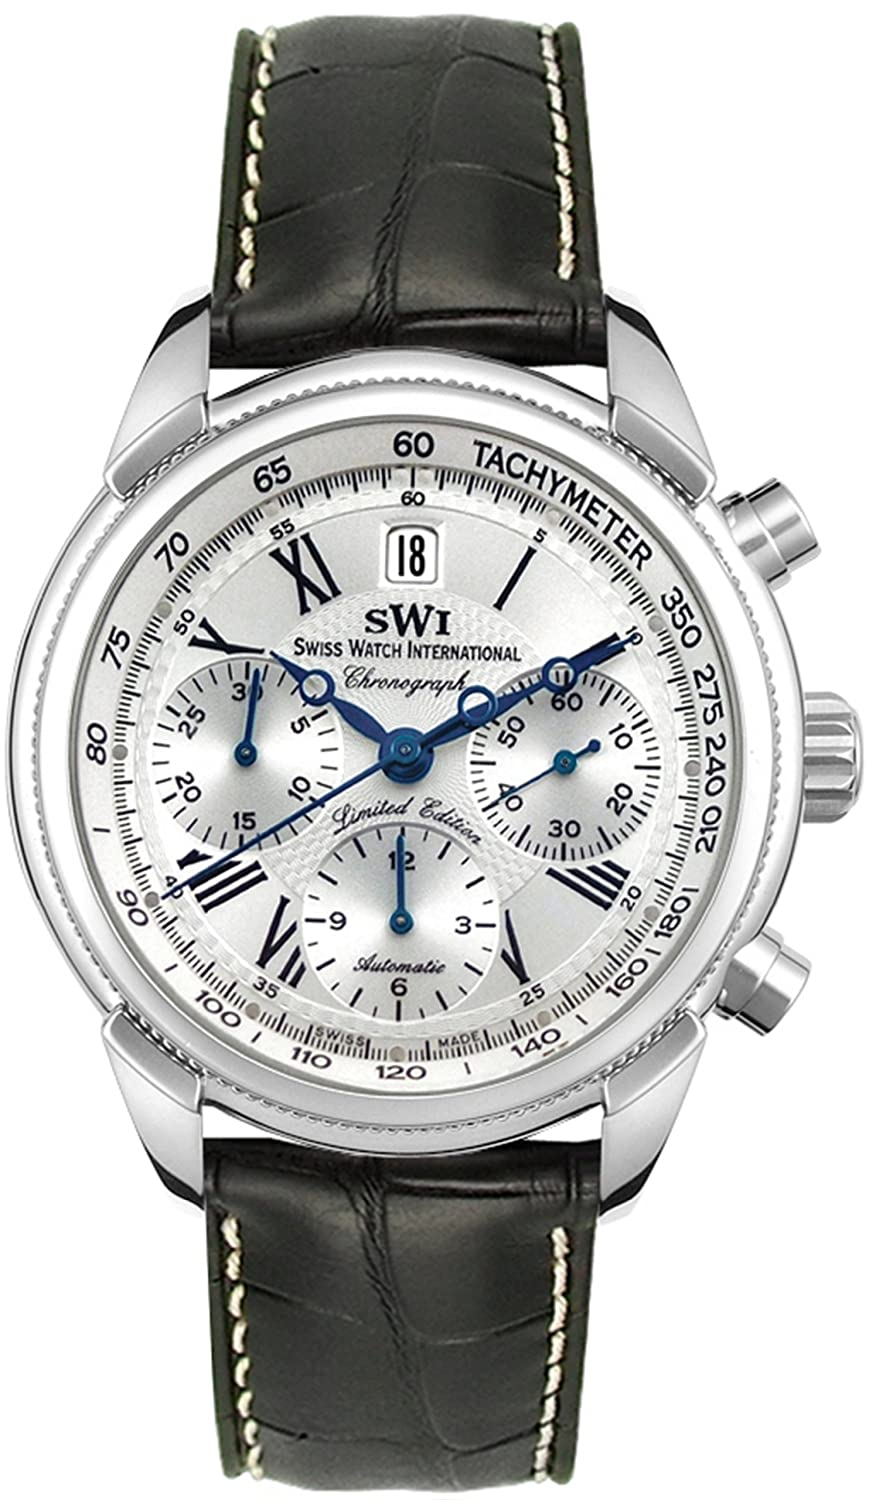 Amazon.com: Swiss Watch International Limited Edition Chronograph Stainless Steel Mens Watch A9244.S.S.A1: Swiss Watch International: Watches